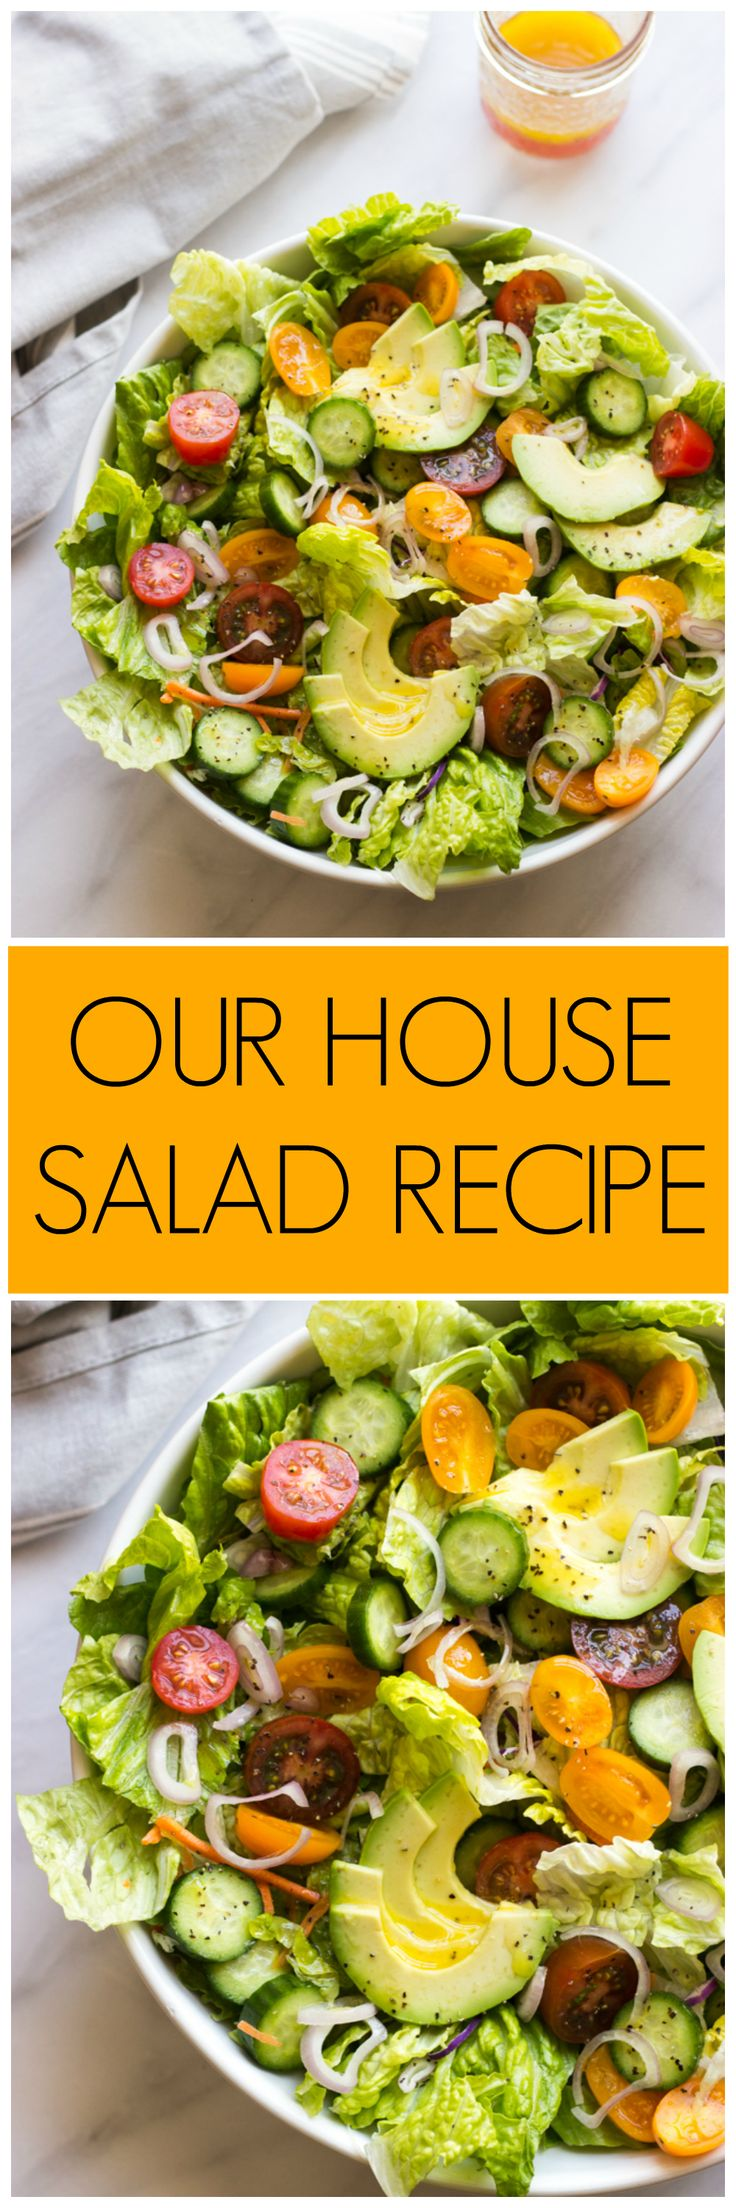 Our House Salad Recipe - the most easiest and delicious every day salad with zesty dressing   littlebroken.com @littlebroken